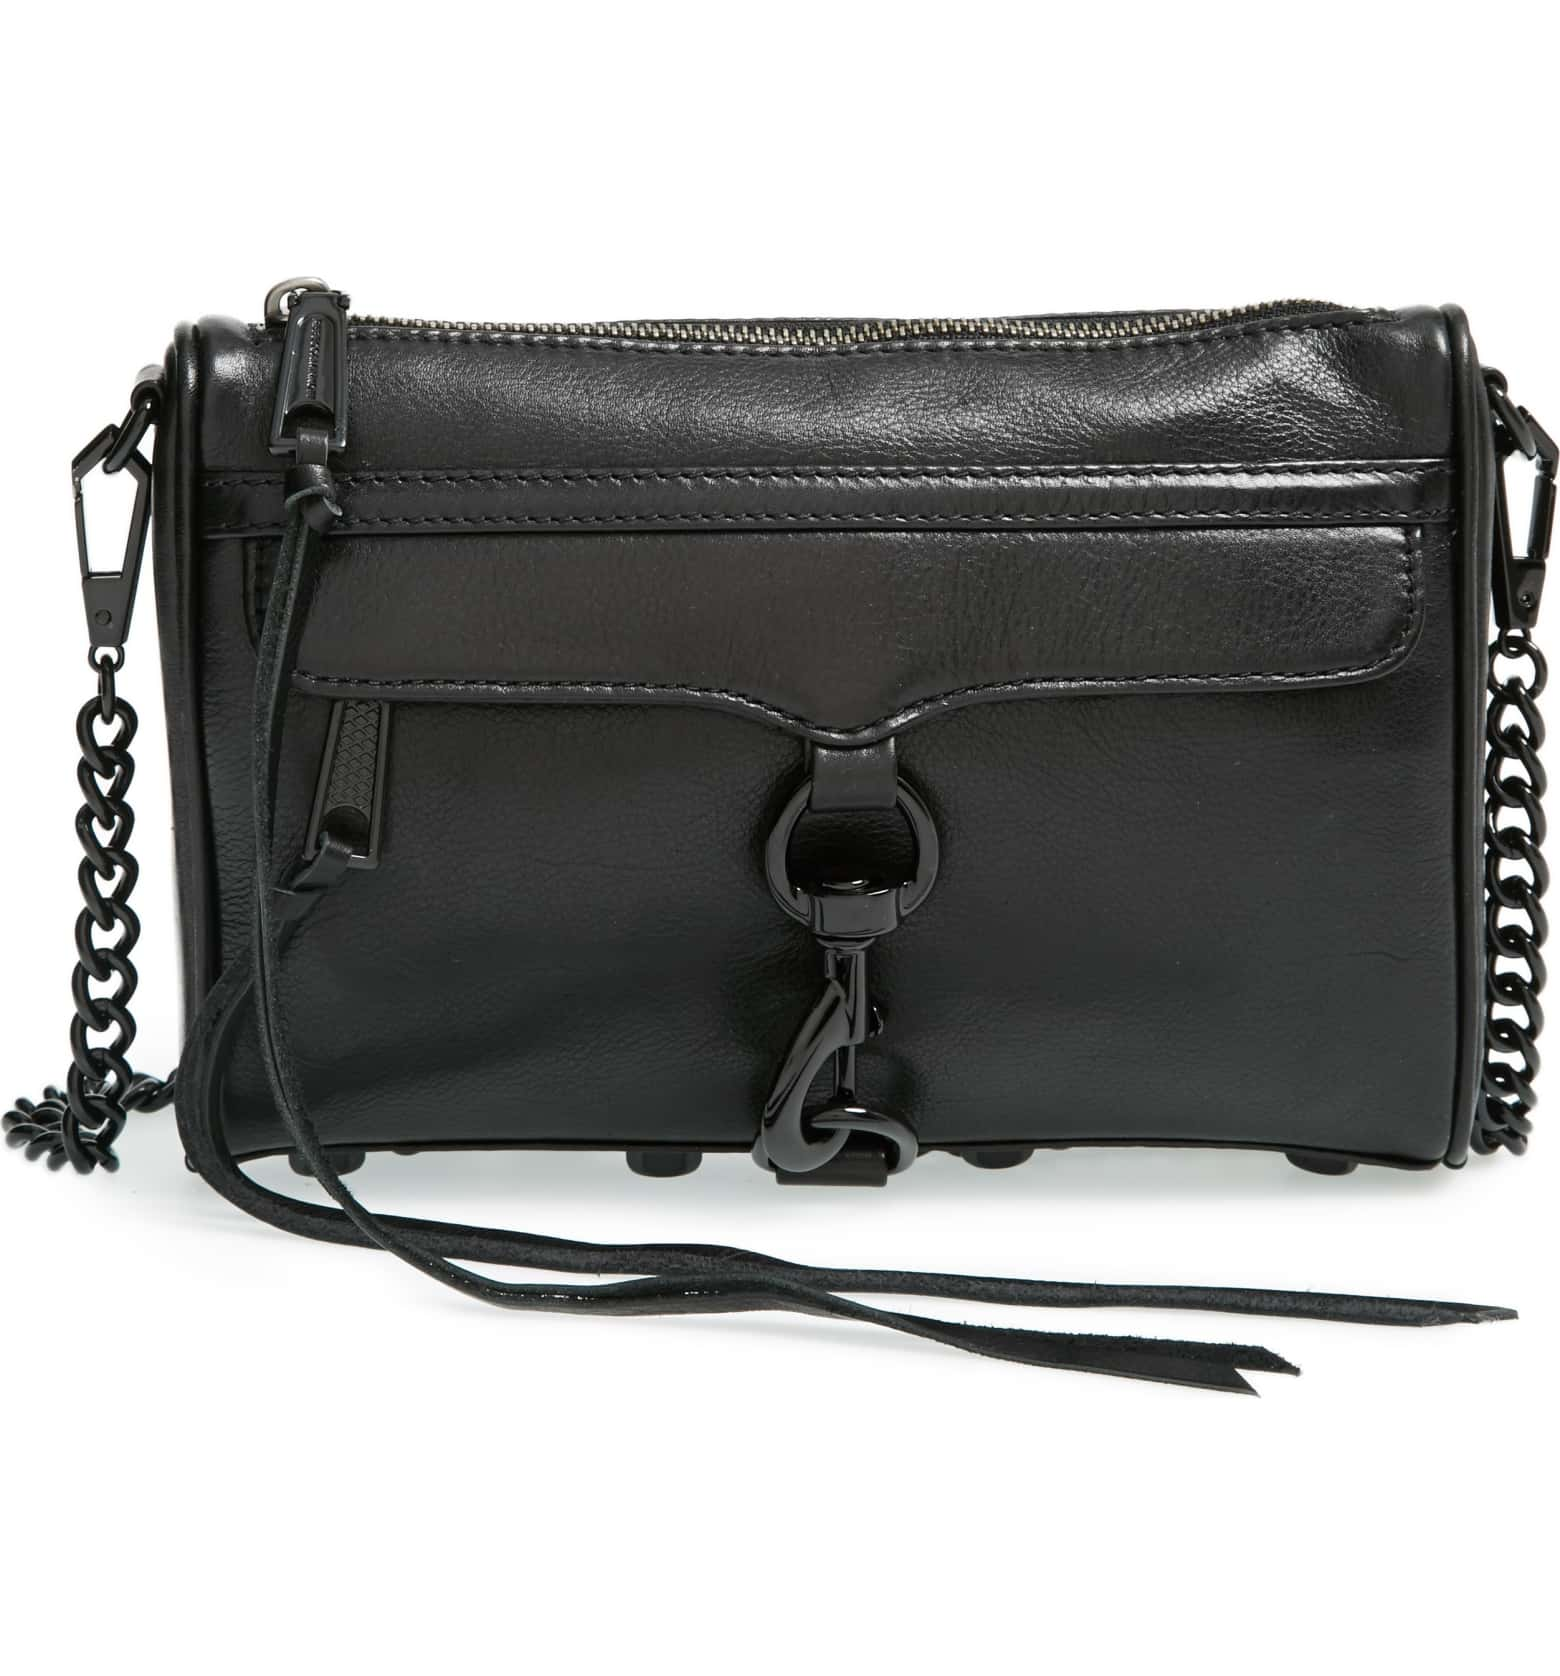 Rebecca-Minkoff-Mini-Mac-Convertible-Crossbody